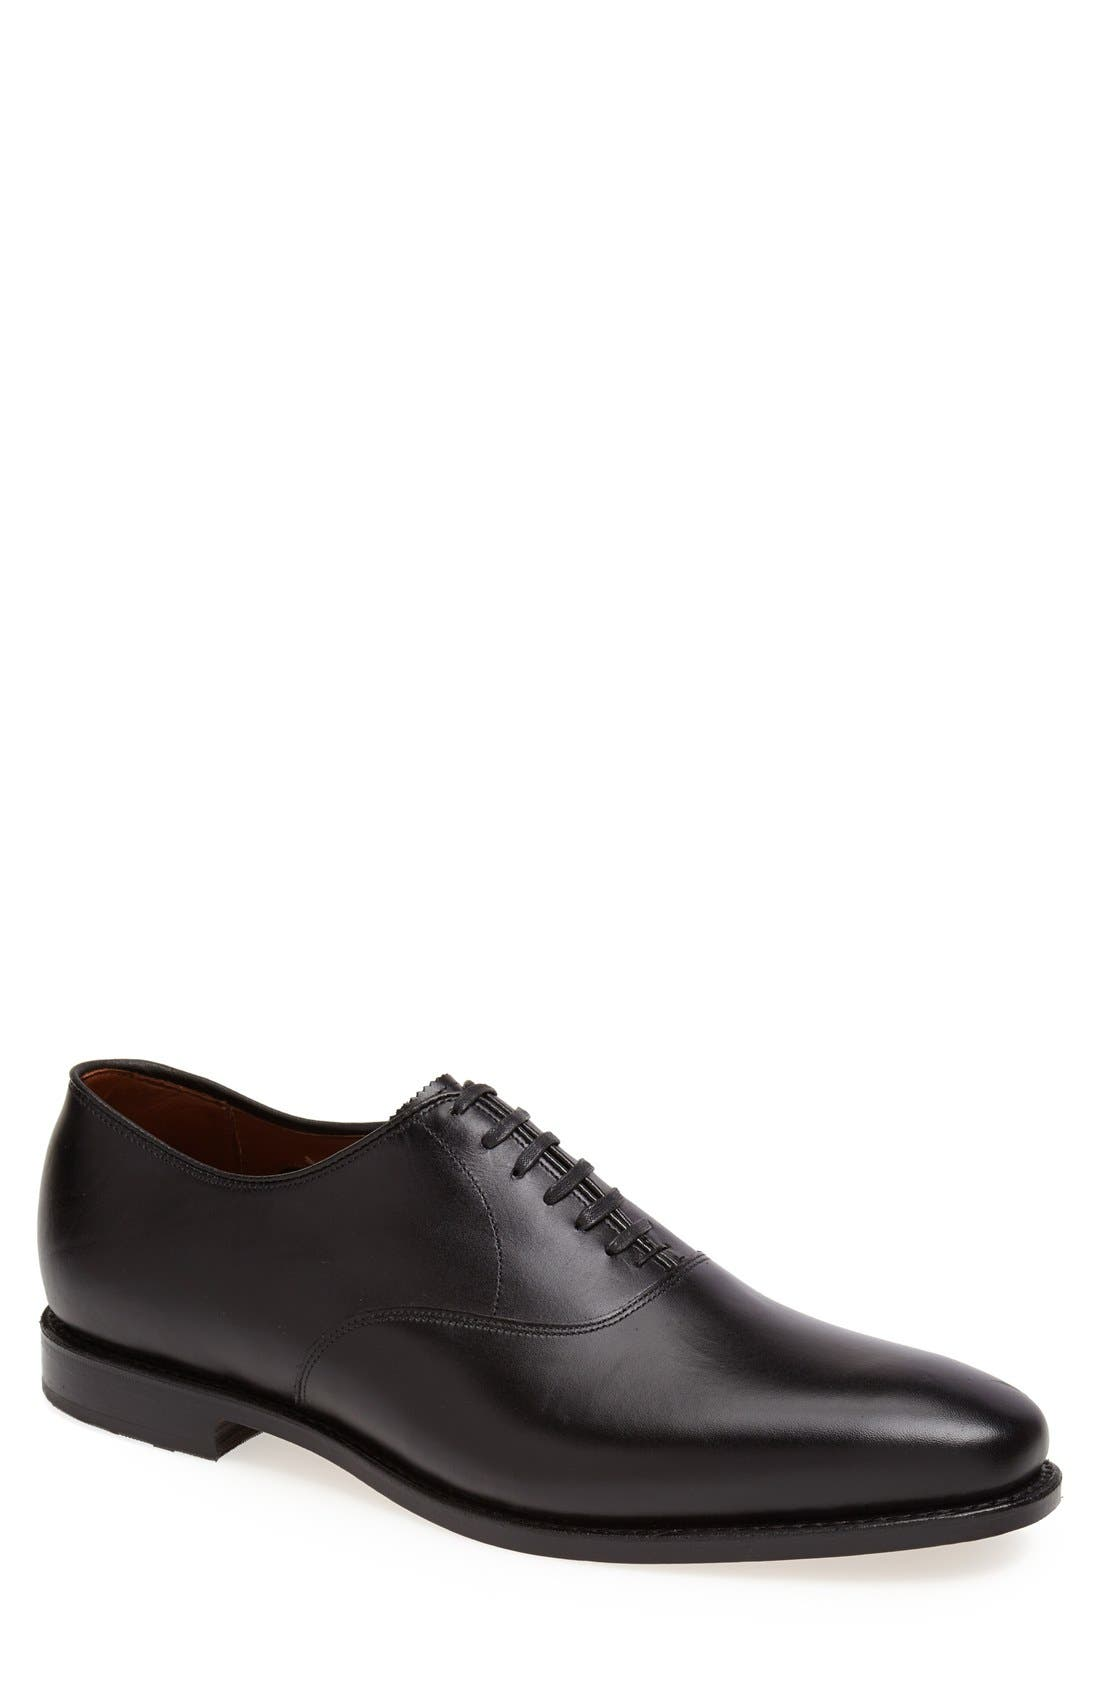 Carlyle Plain Toe Oxford,                             Main thumbnail 1, color,                             Black Leather